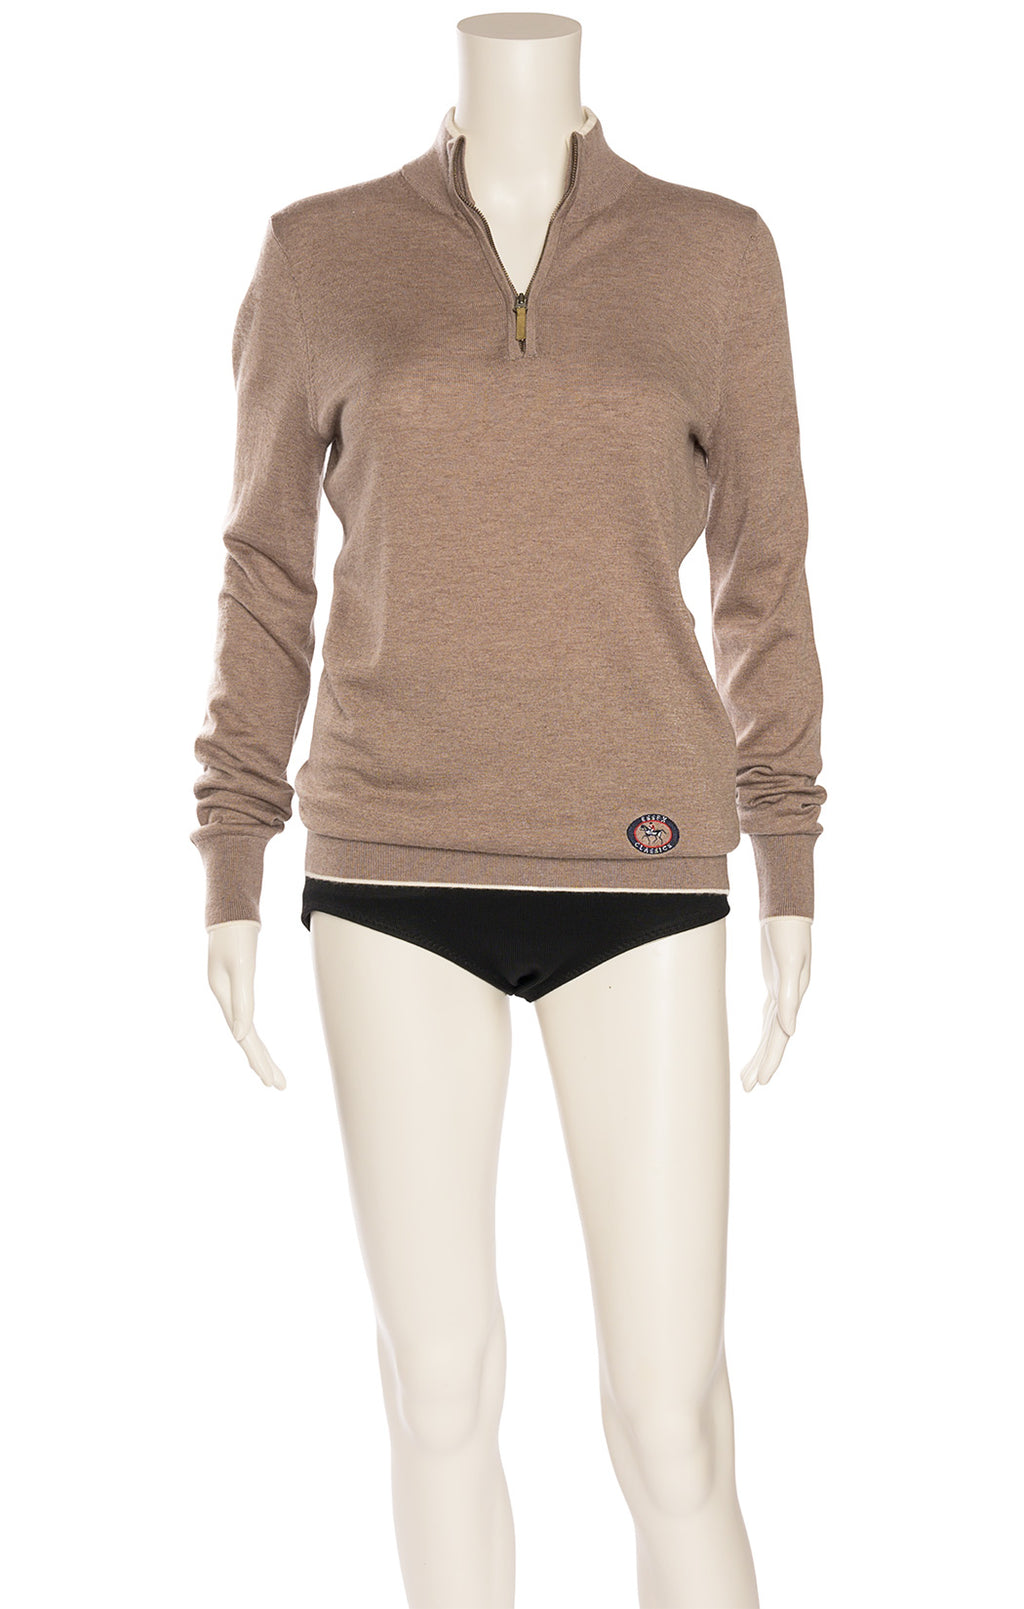 Taupe can with white border and back elbow patch long sleeve sweater with top zipper opening